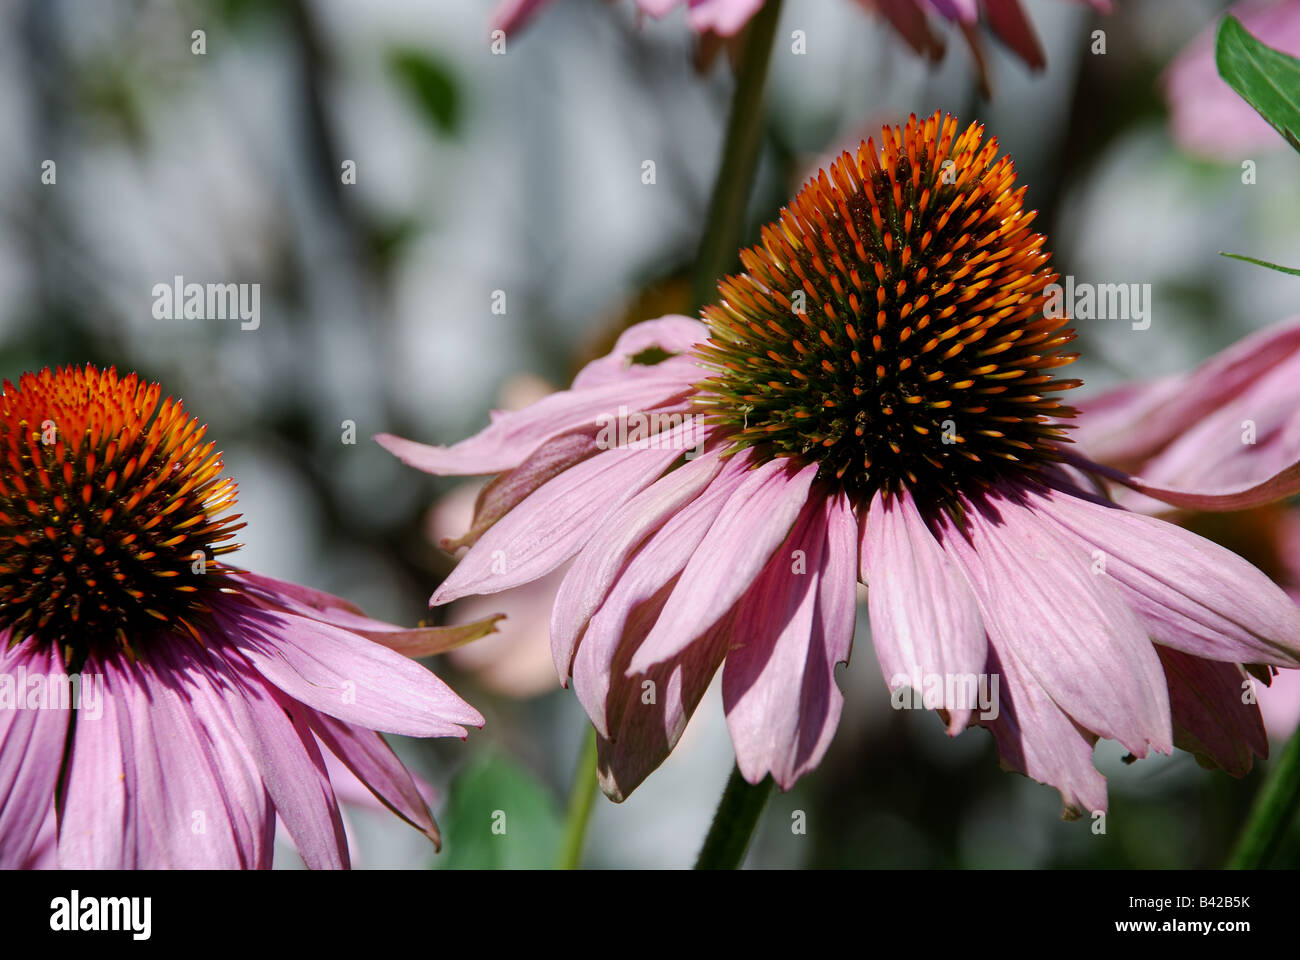 pink flowers, pointy yellow flower buds, garden - Stock Image